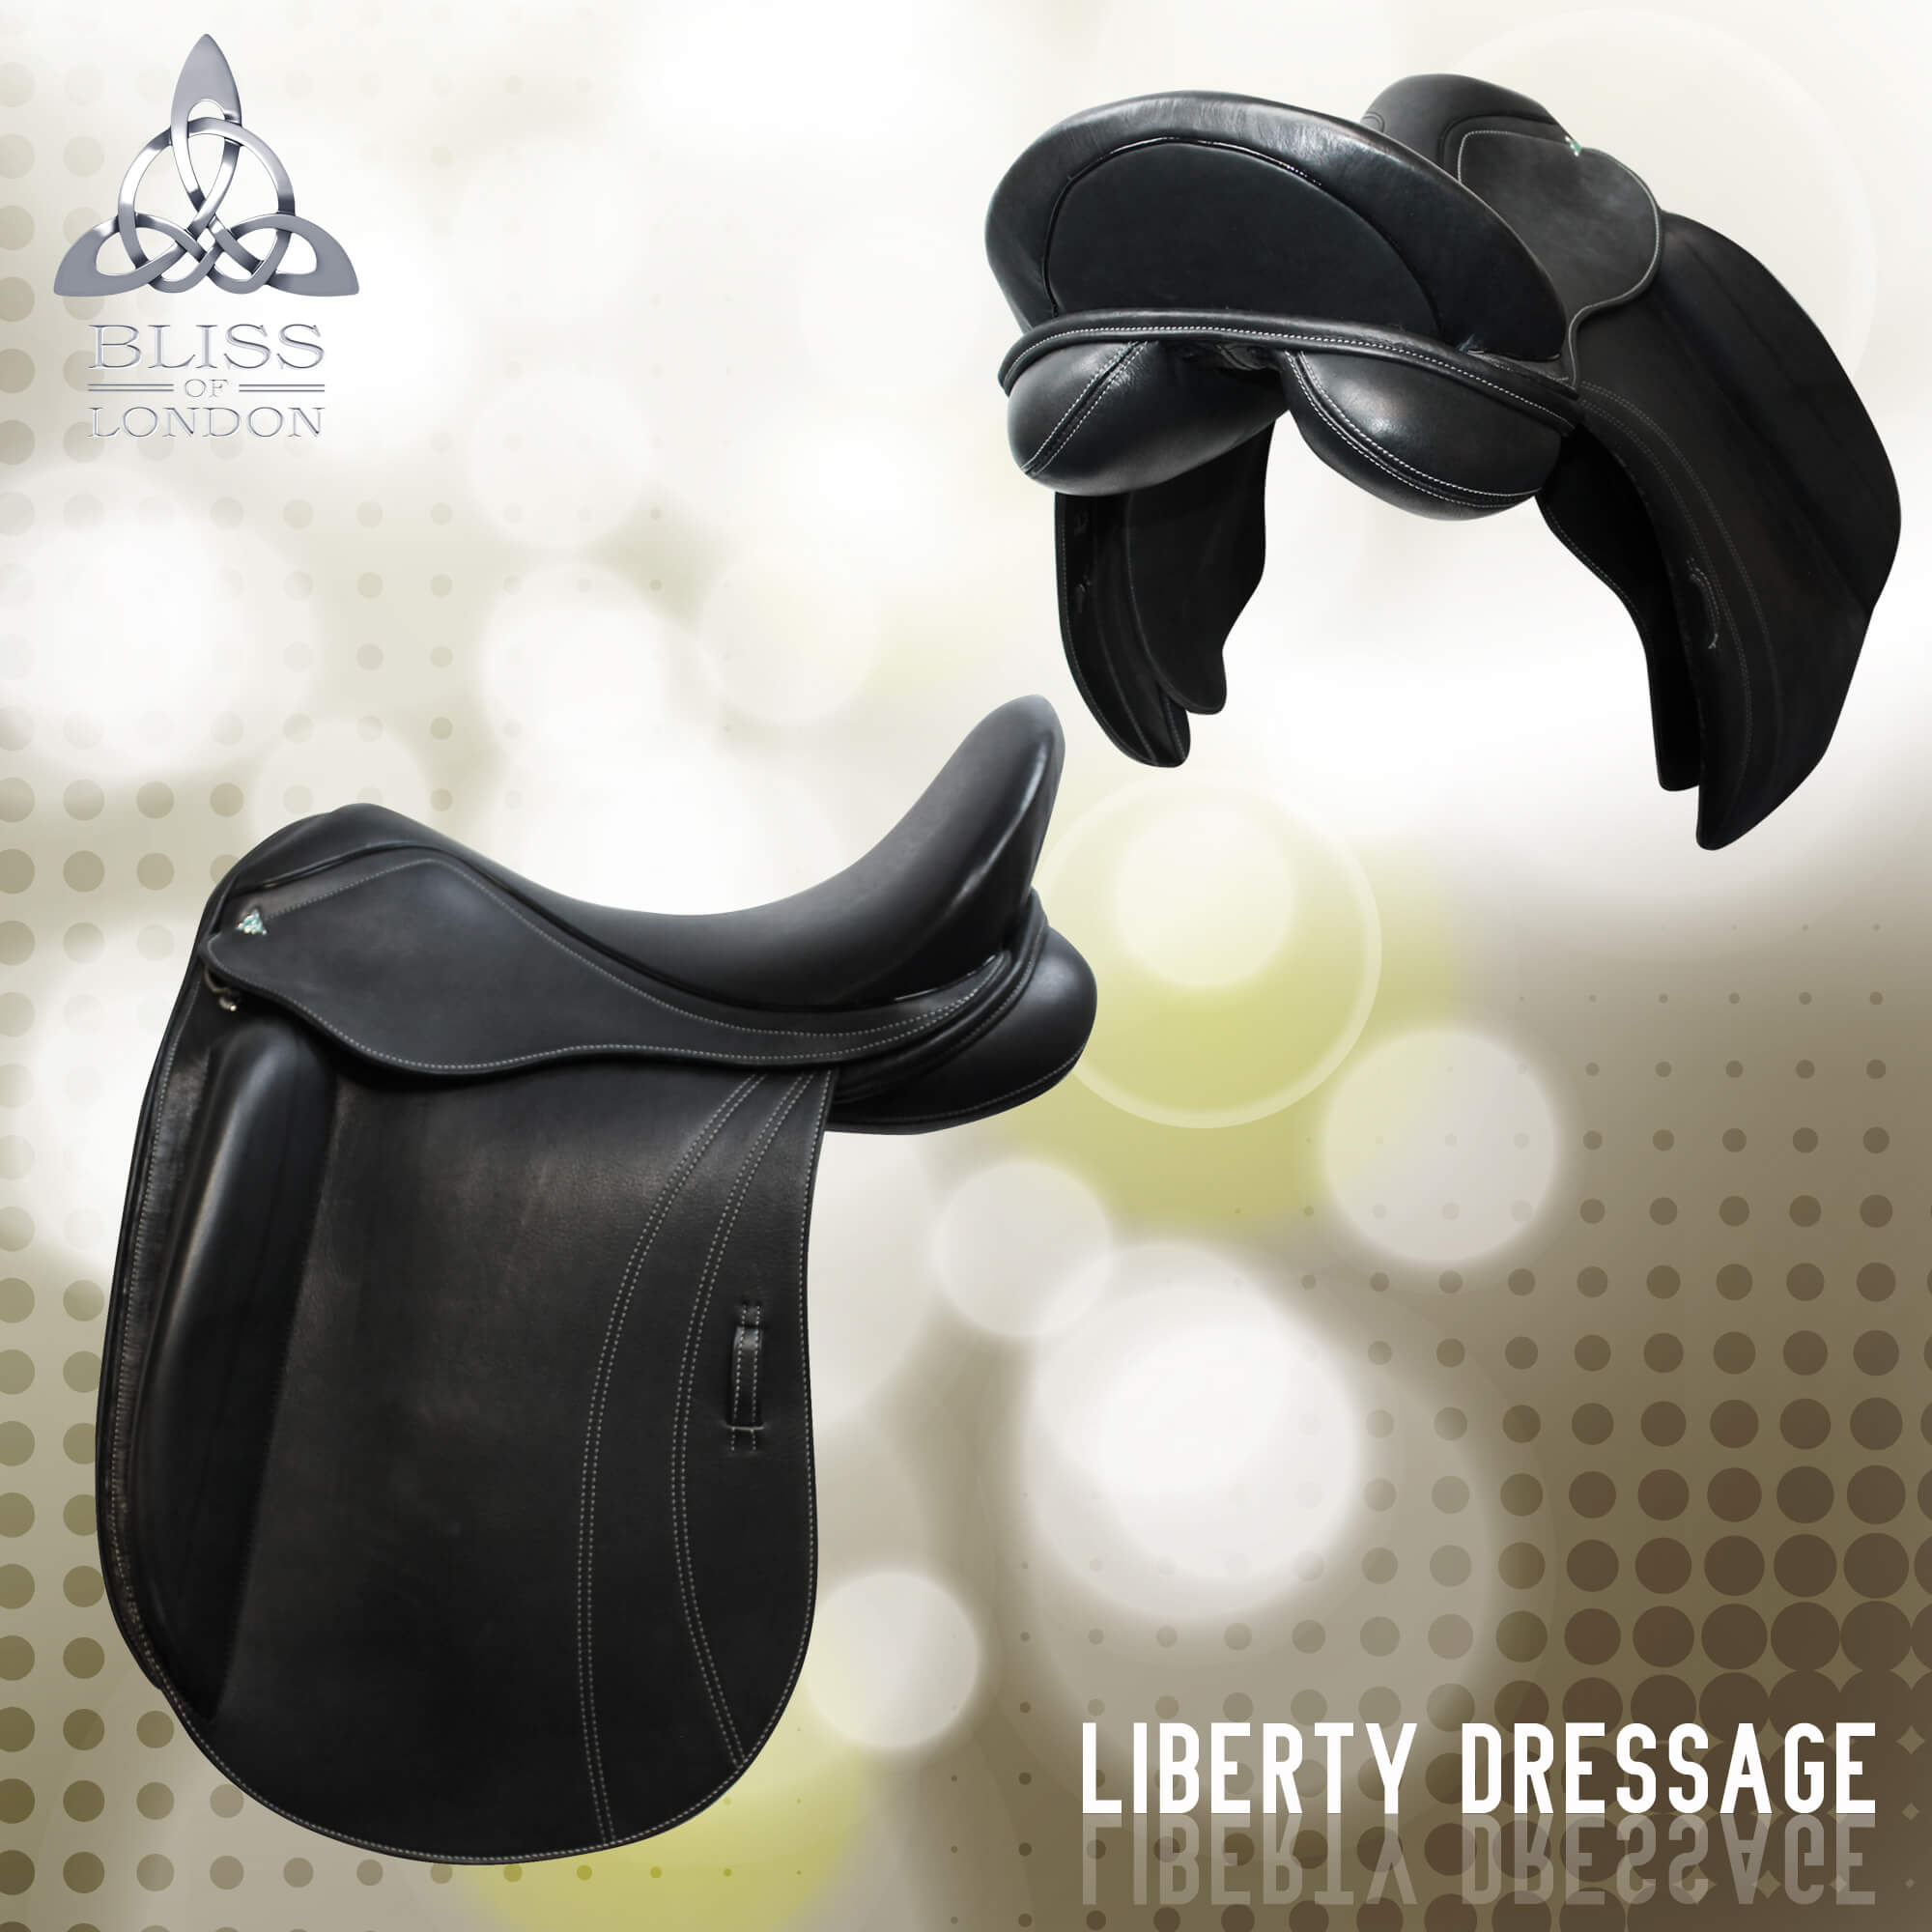 5 Bliss Liberty Dressage Saddle